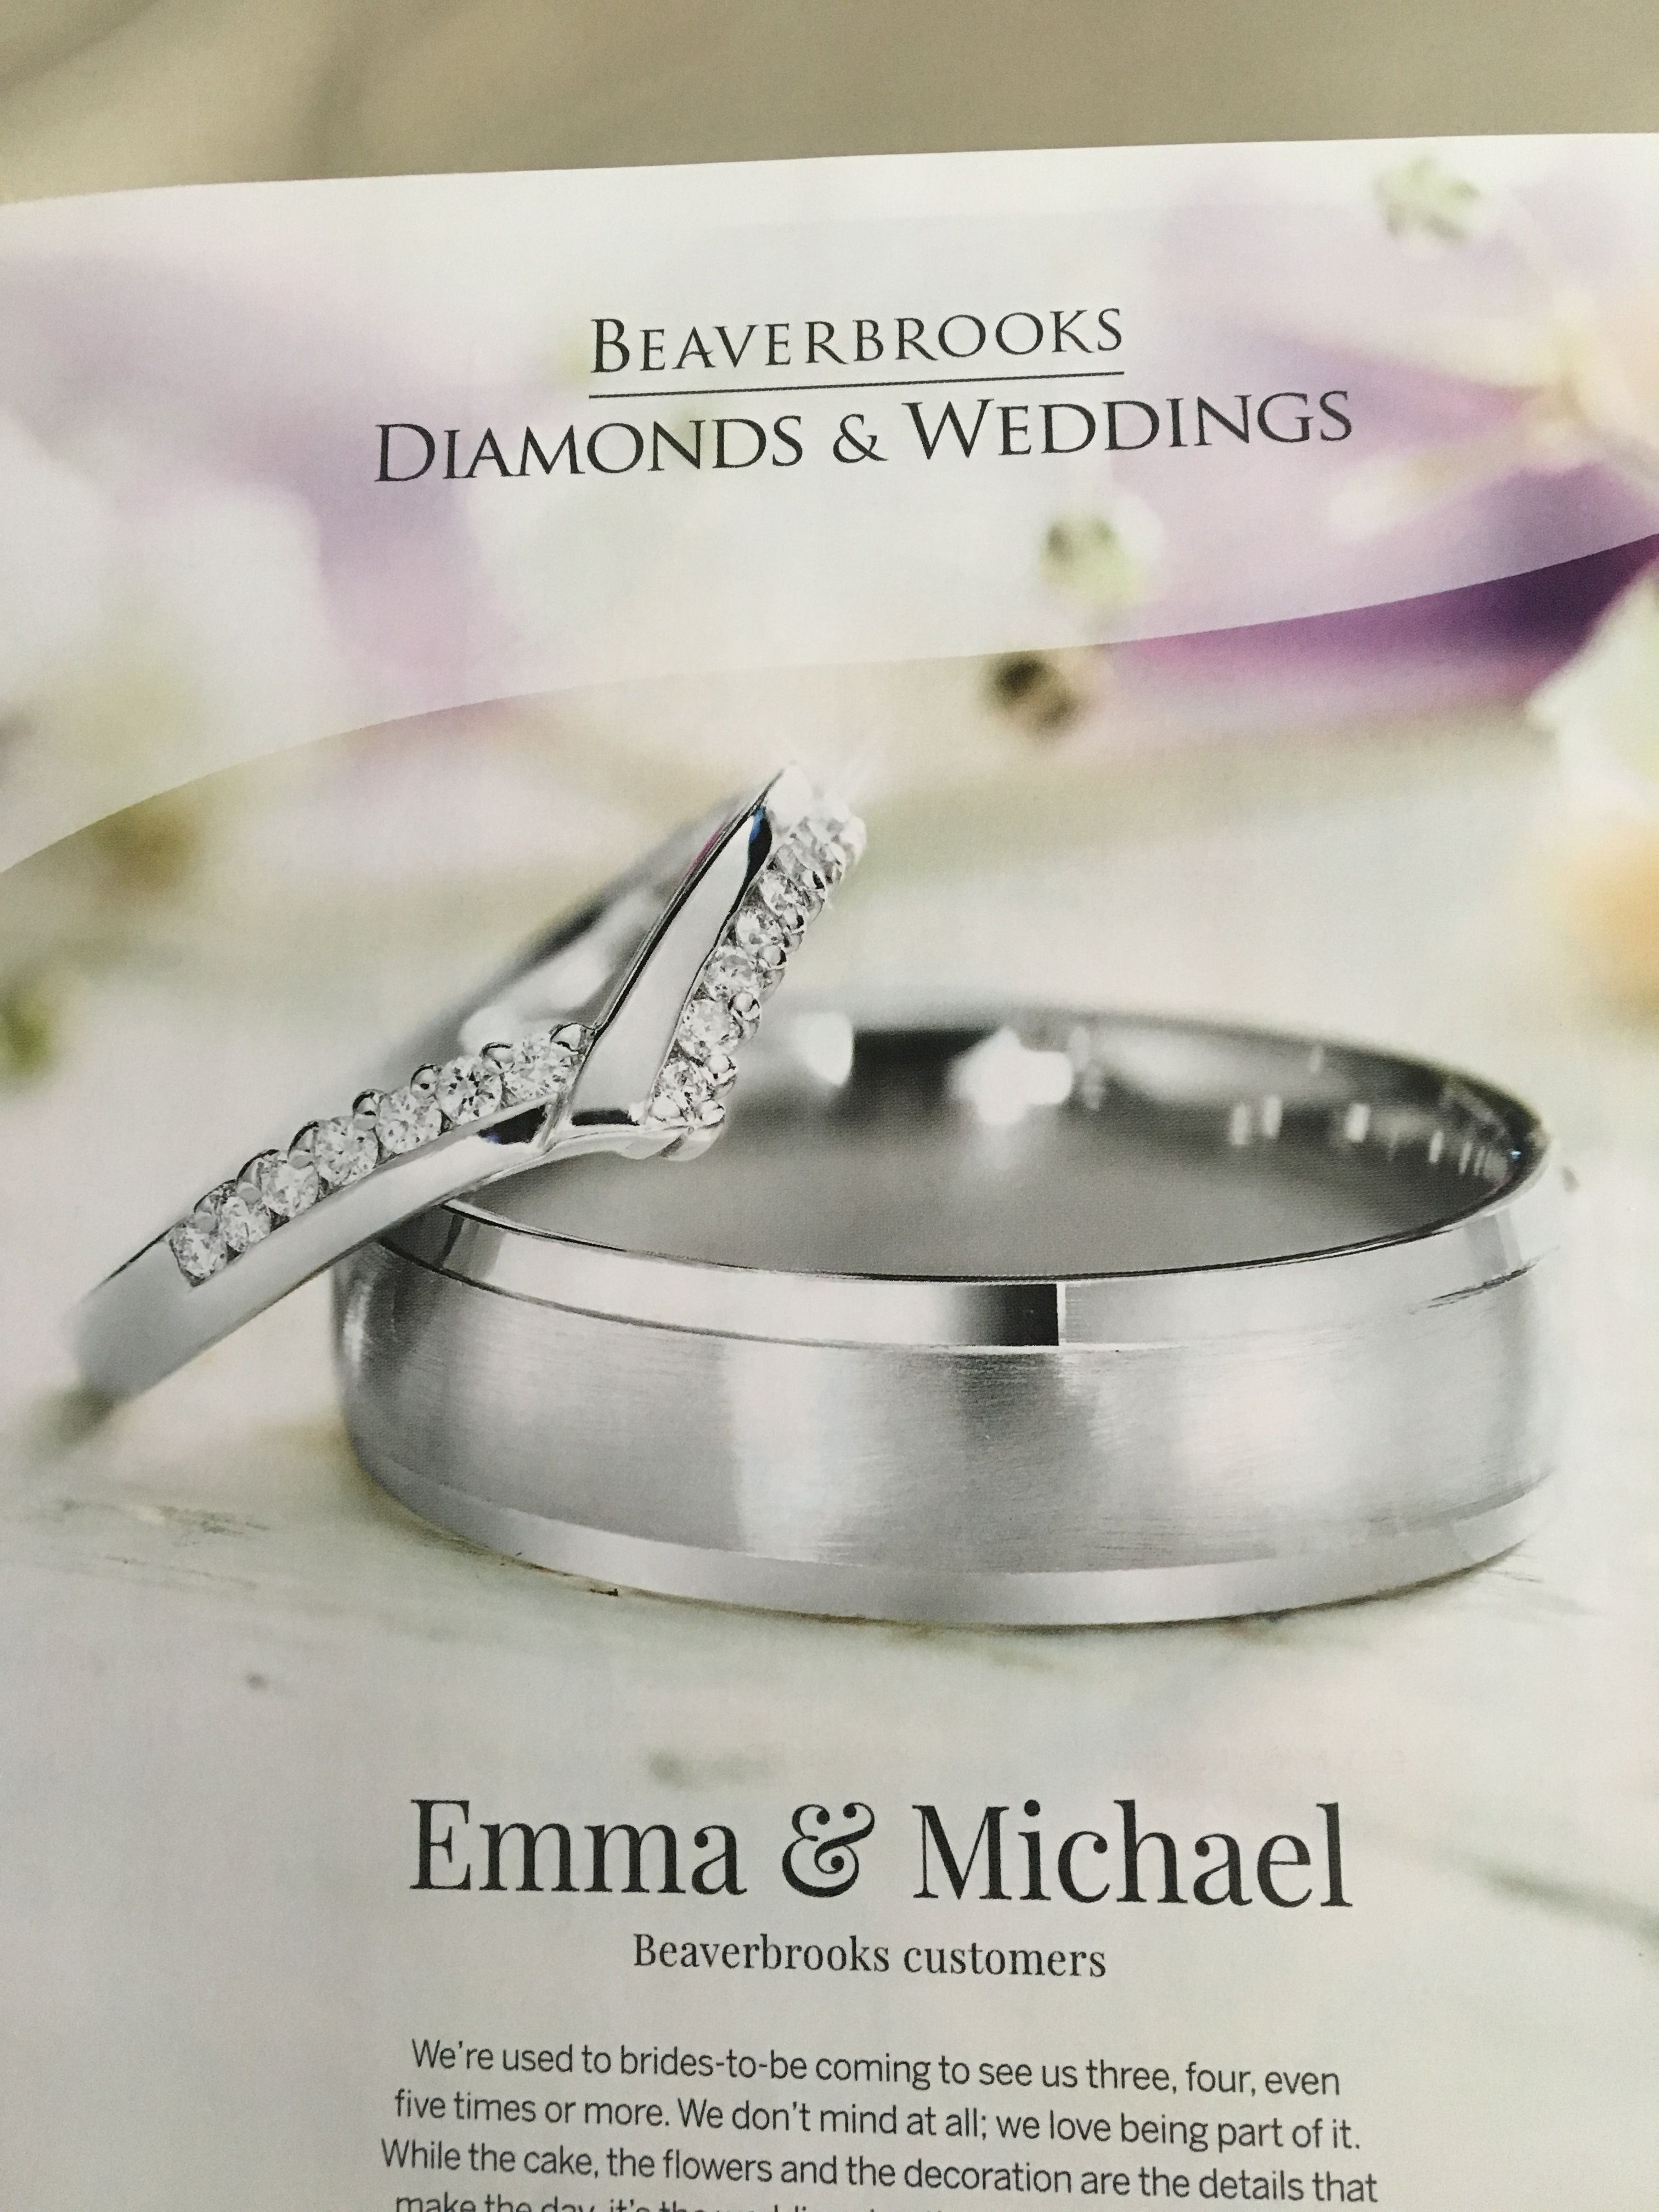 Pin by beth chaloner on wedding bands pinterest weddings